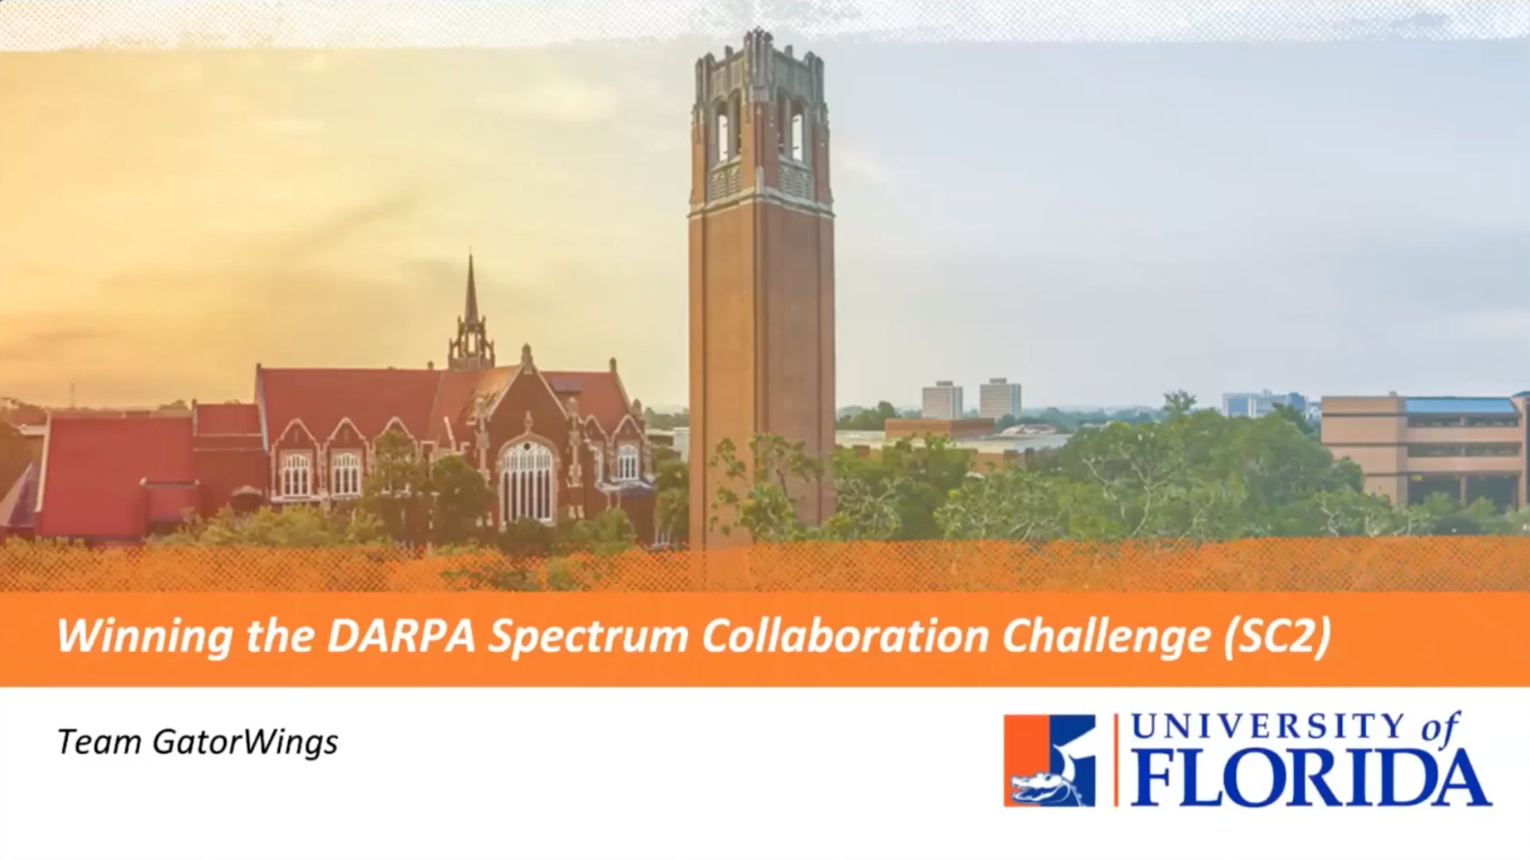 Winning the DARPA Spectrum Collaboration Challenge - IEEE Future Networks webinar